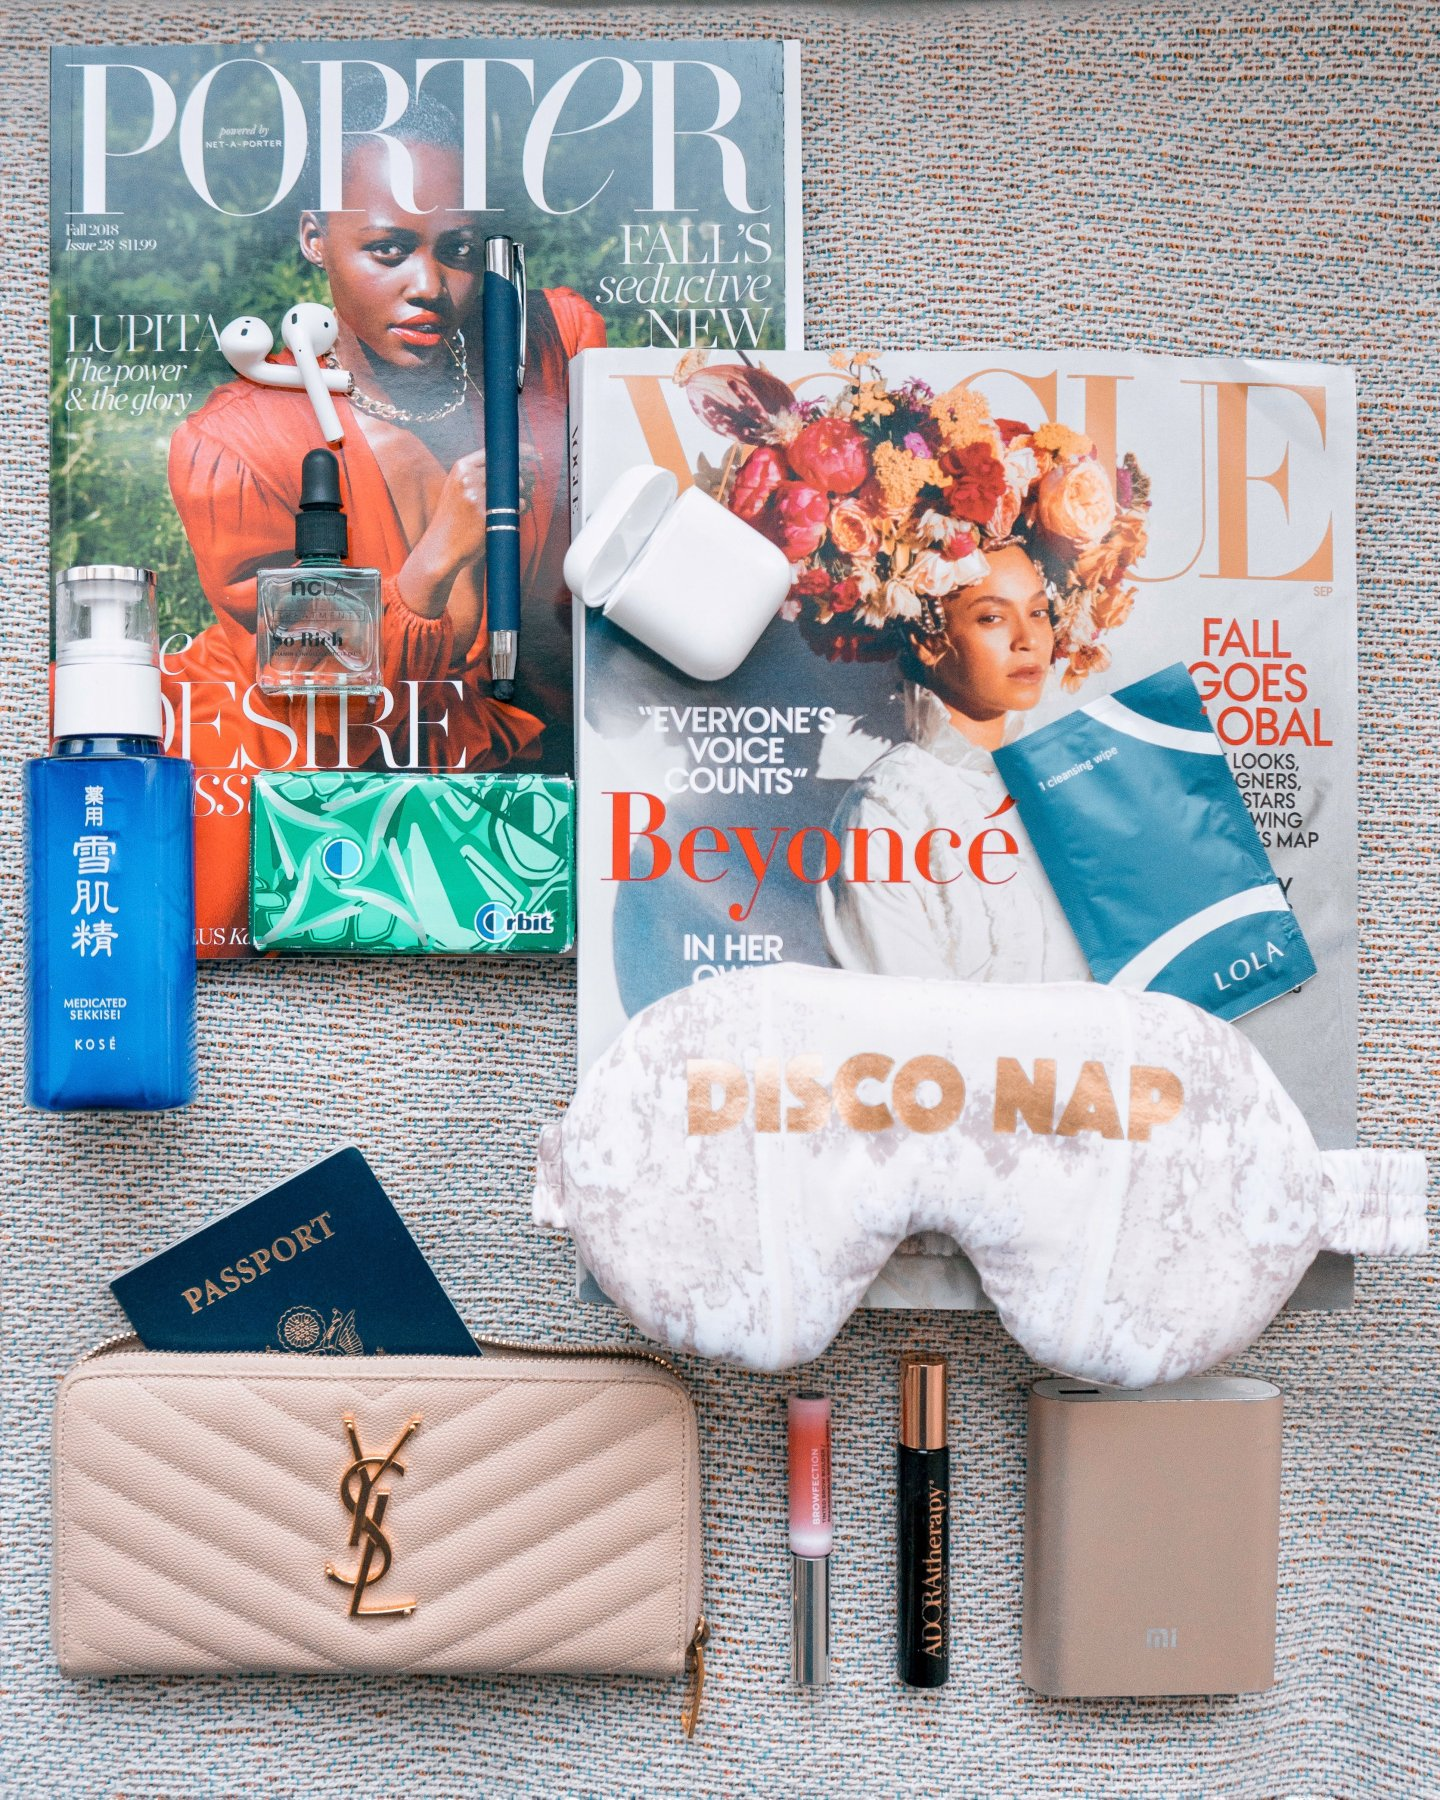 How to Survive Long Flights, what to pack for long flights, carry on essentials, carry on packing list